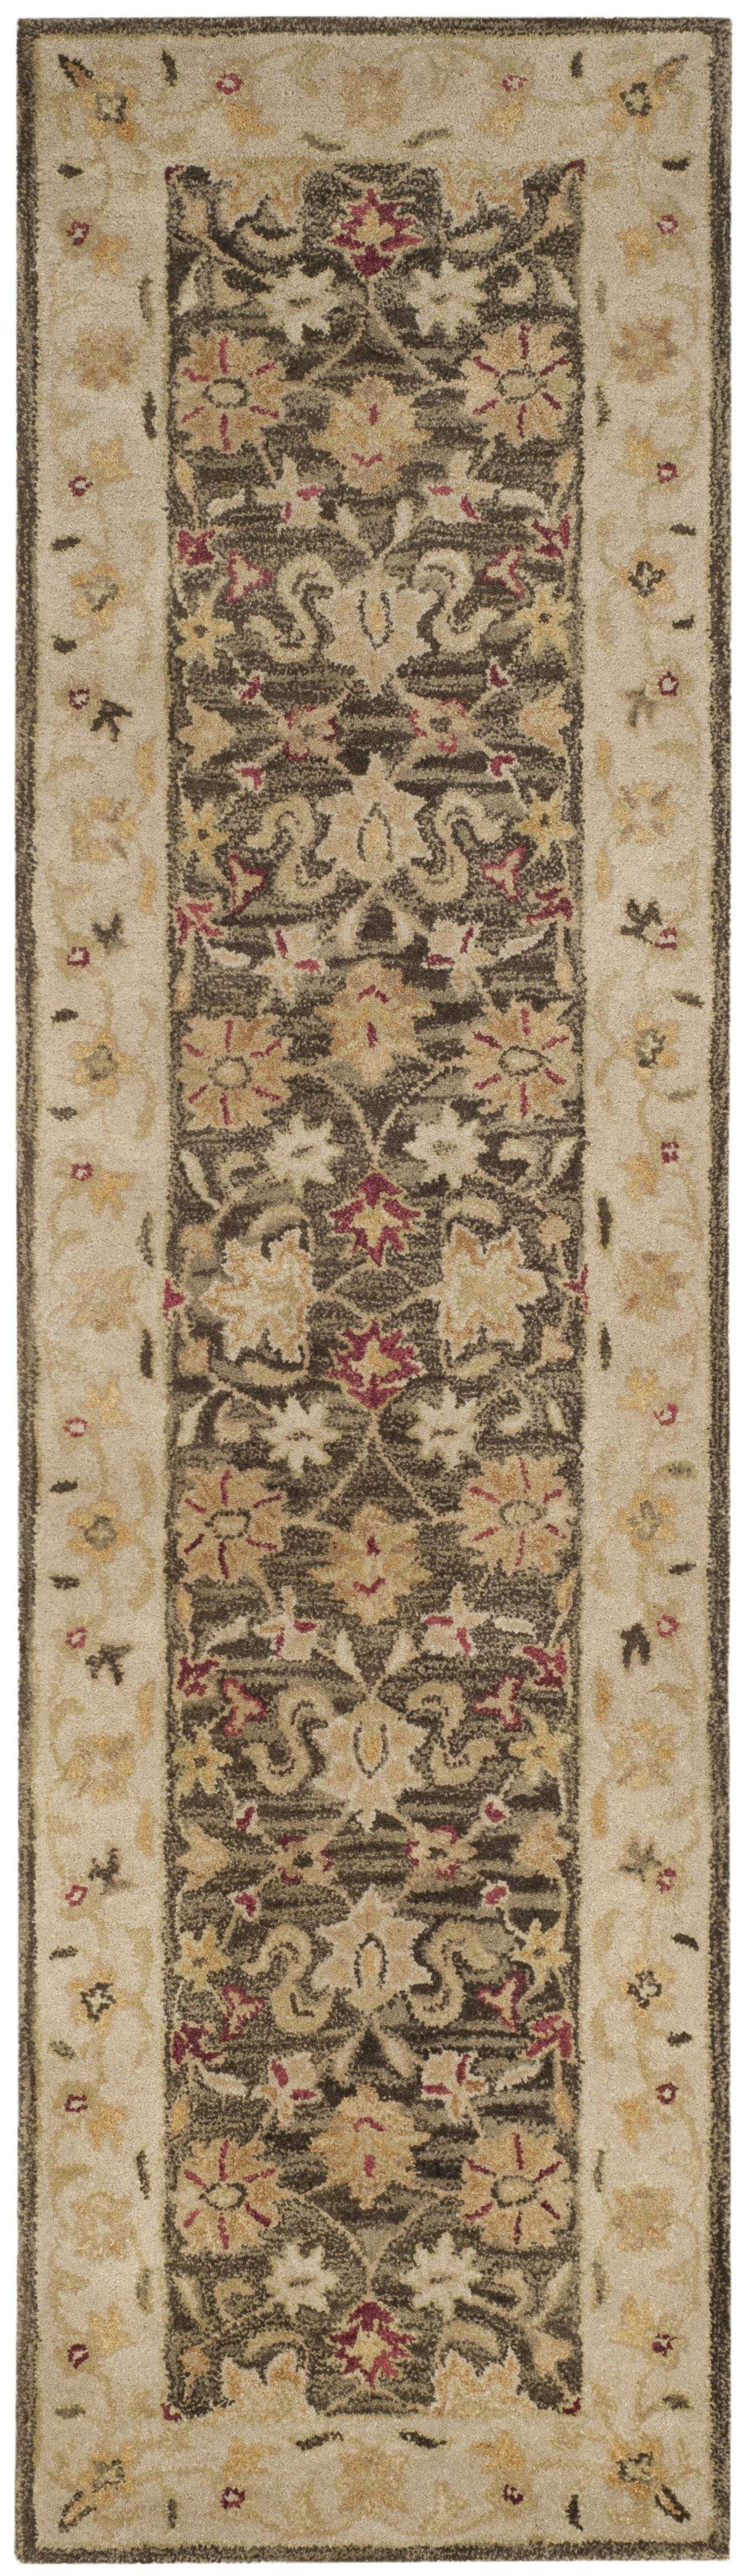 Tinley Hand-Tufted Wool Olive Gray Area Rug Rug Size: Runner 2'3